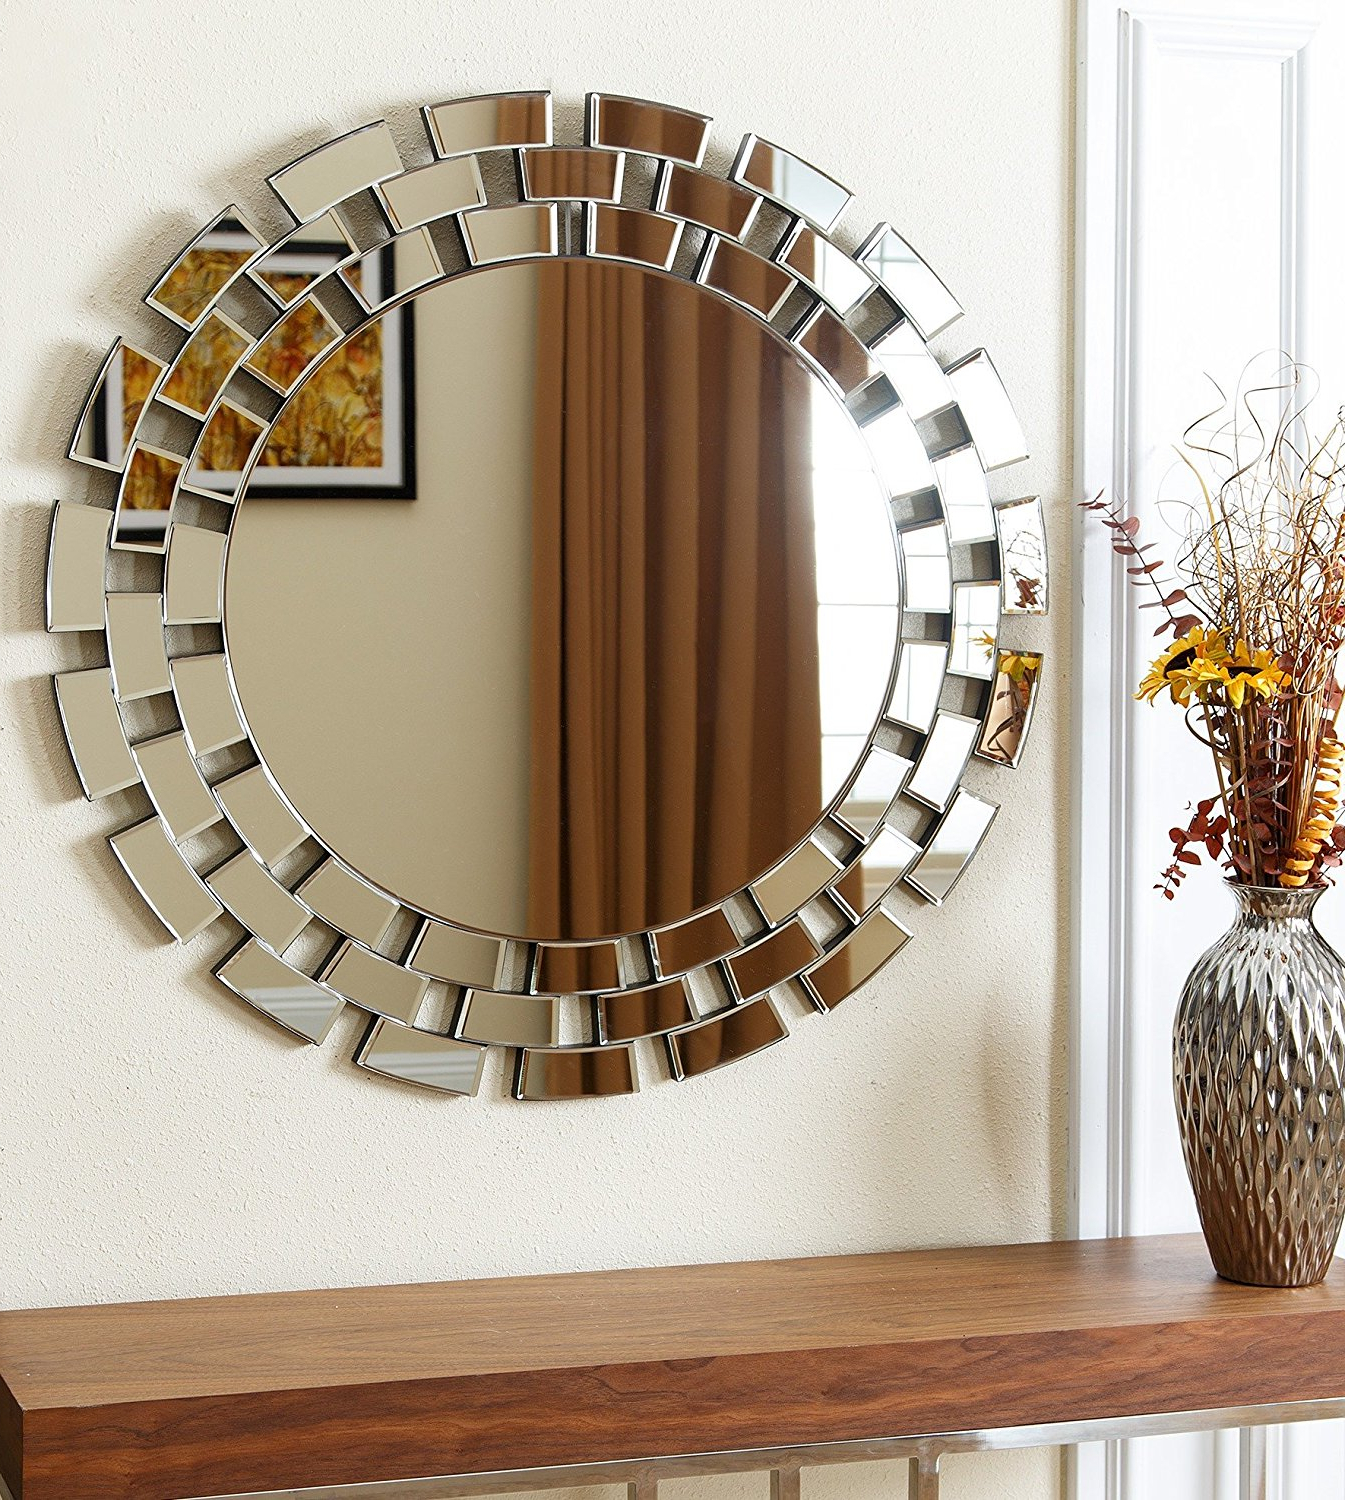 Most Popular Decorative Round Wall Mirrors In Exciting Large Round Wall Mirror With Fancy Design Bathroom Curved (Gallery 15 of 20)